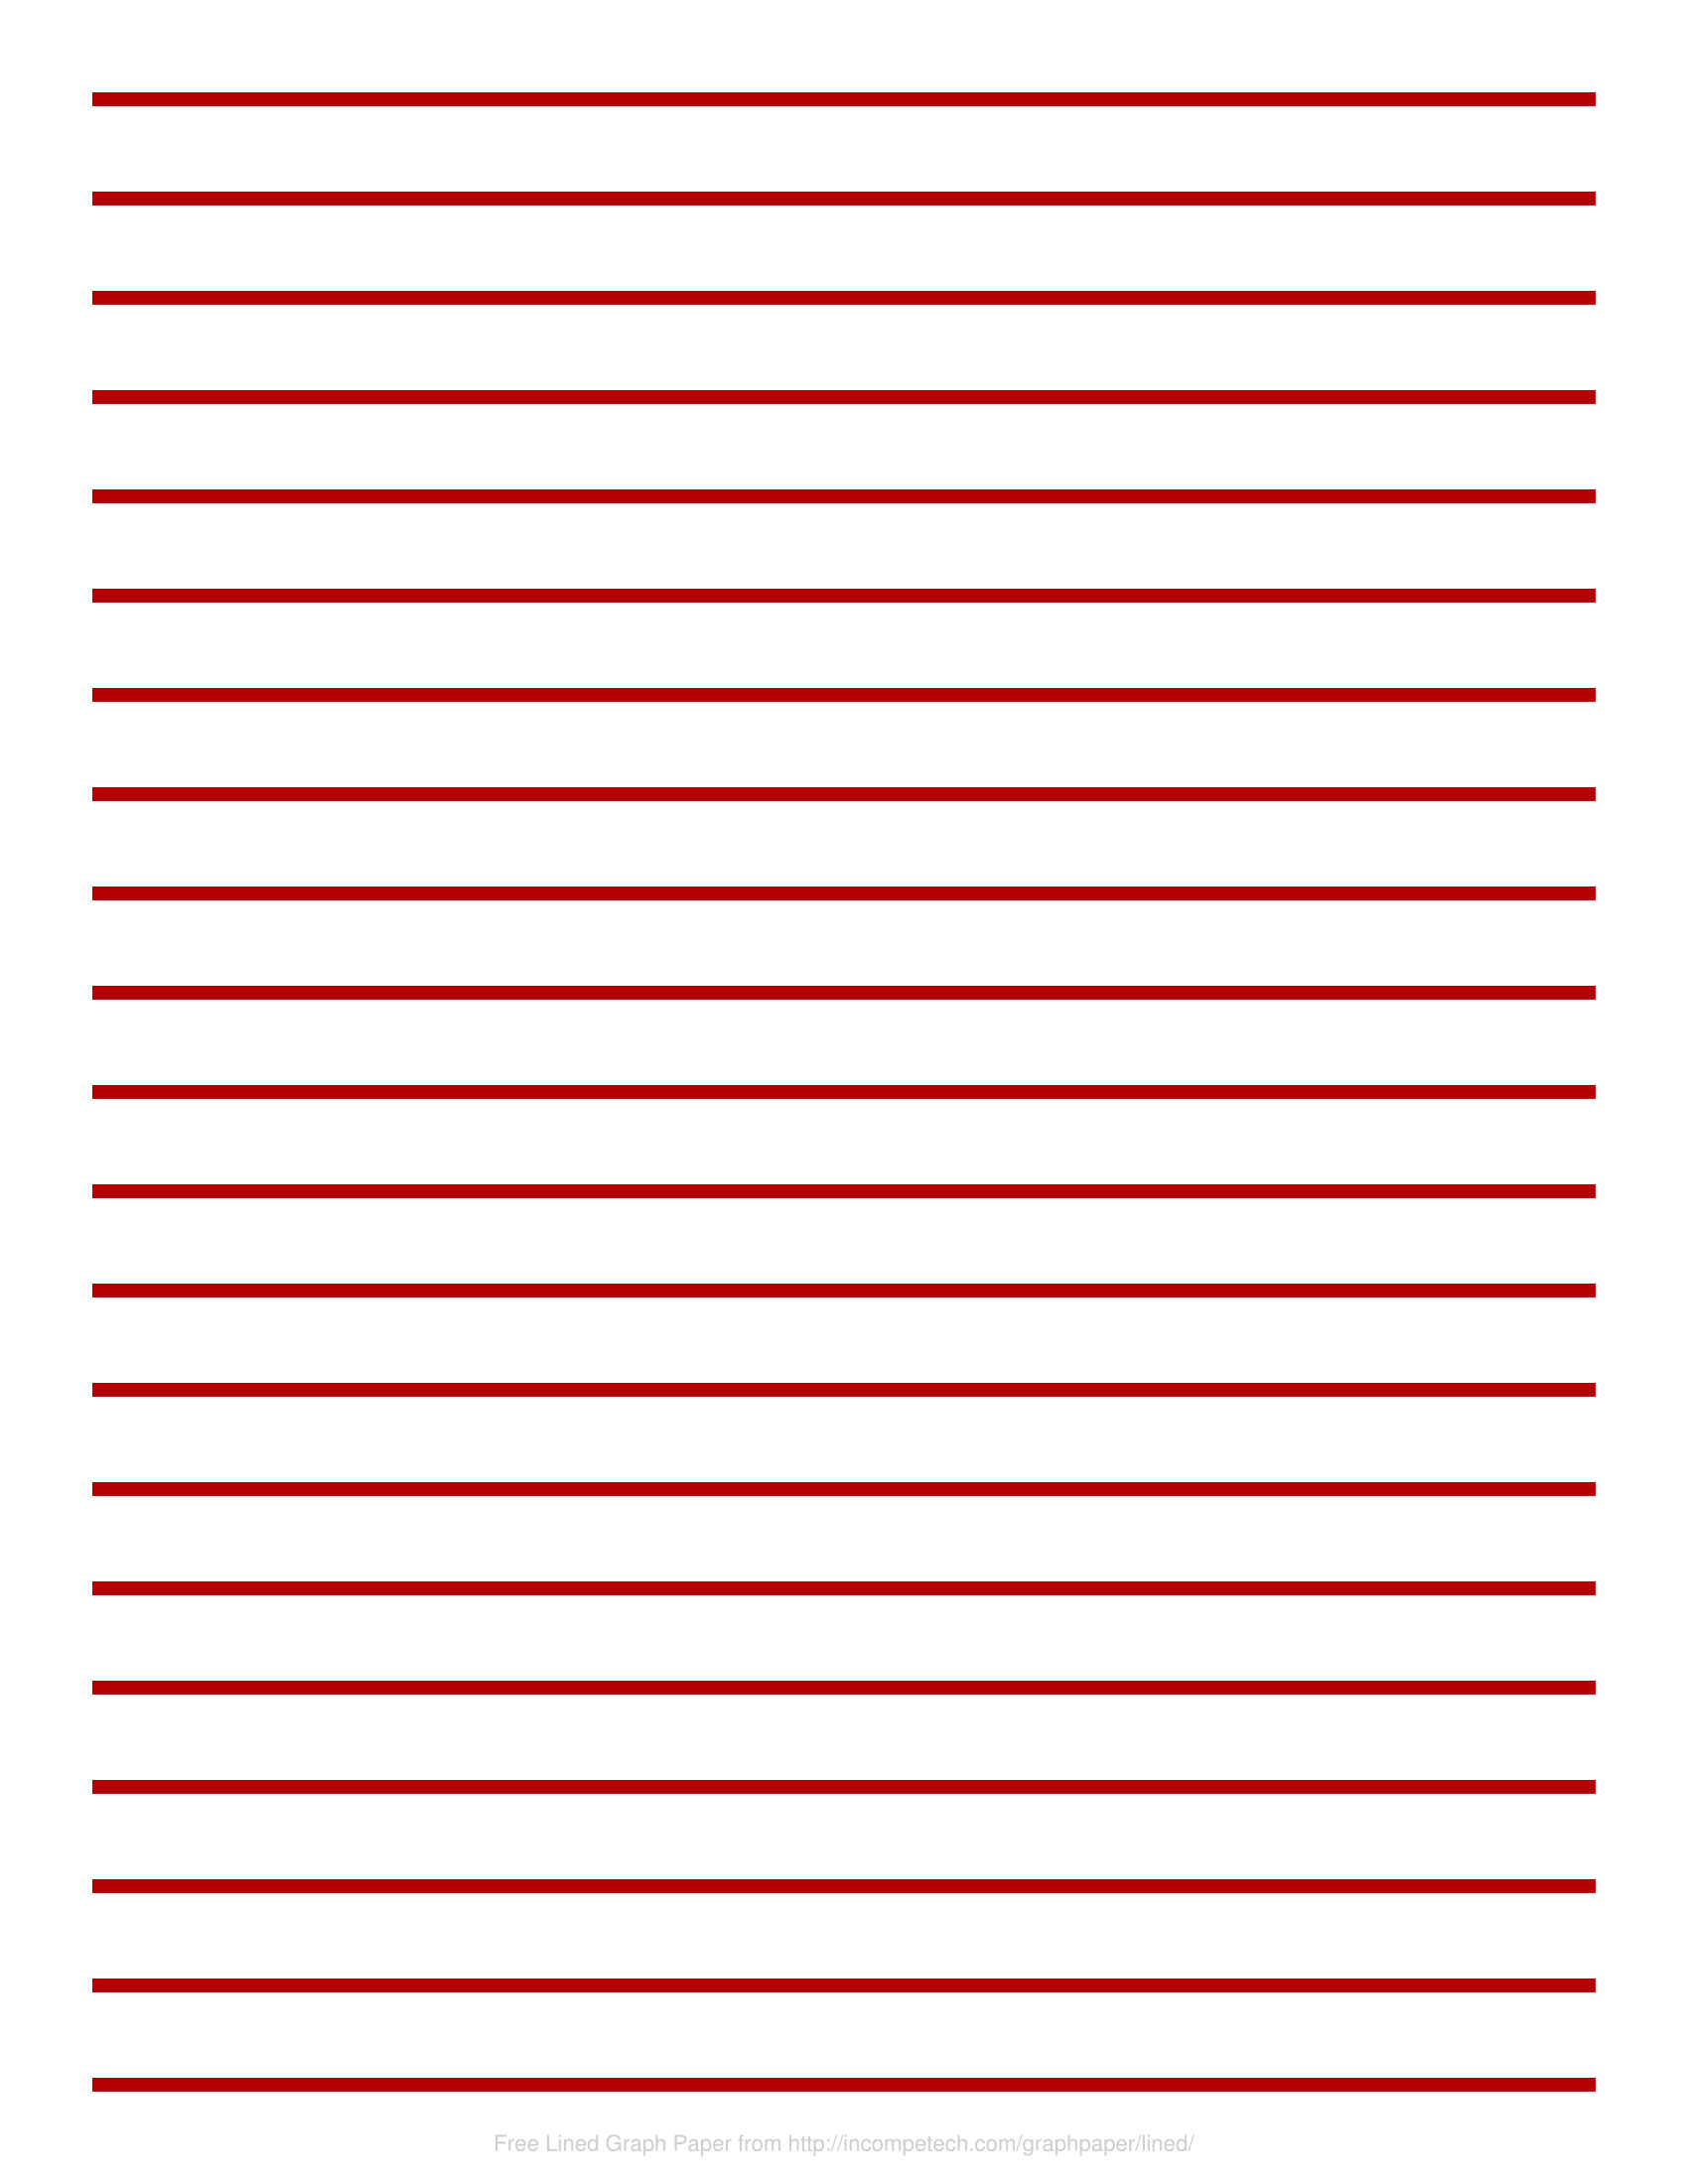 Free Online Graph Paper Lined